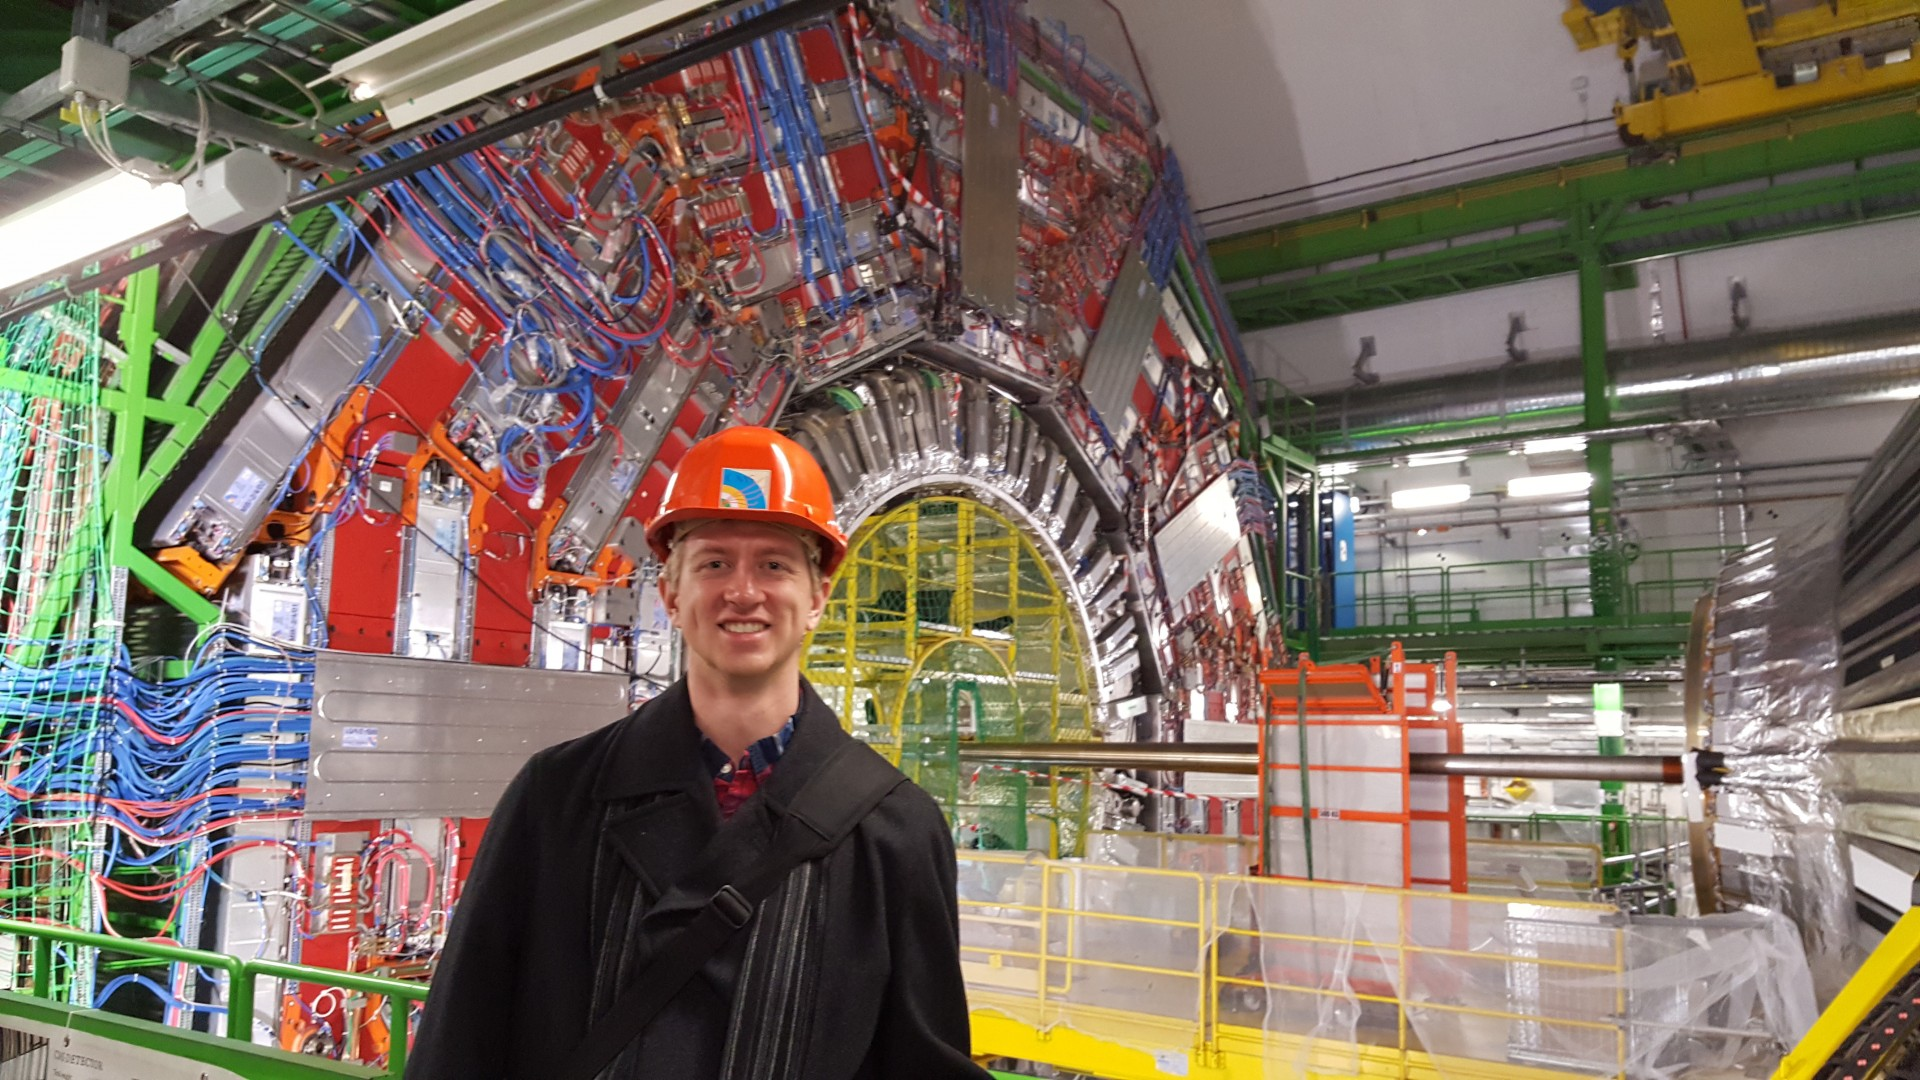 Tony Lefeld, a doctoral student in physics at Ohio State, stands in front of CMS detector at the Large Hadron Collider.